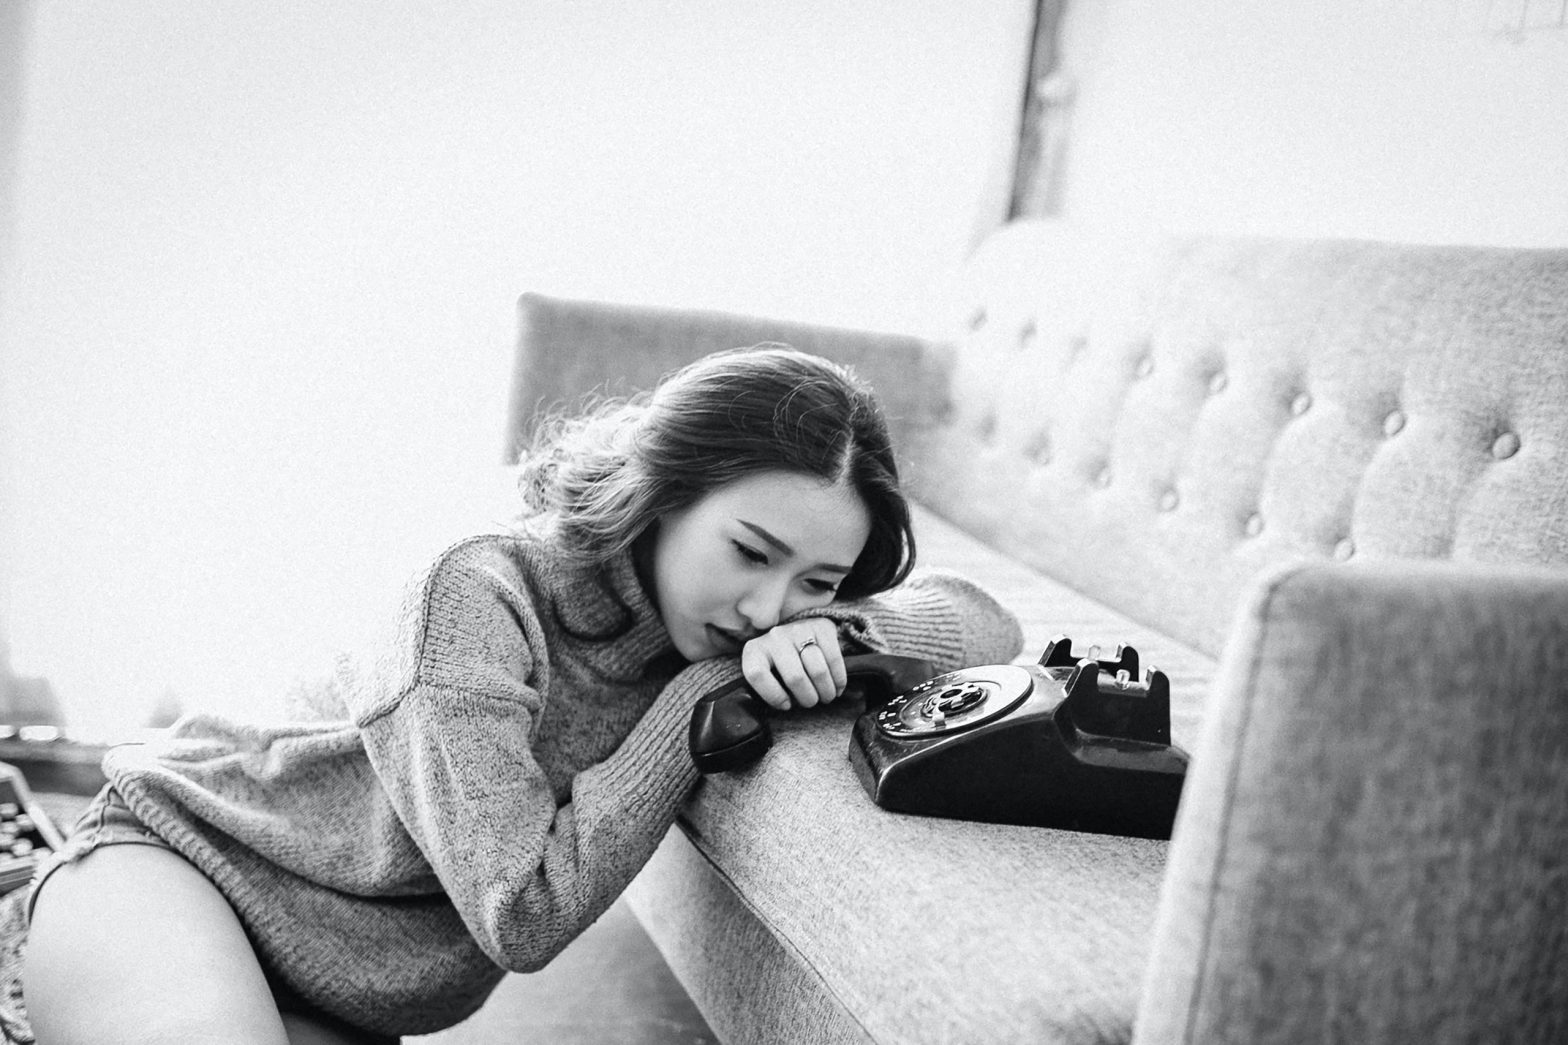 Woman waiting by the phone to symbolize codependency